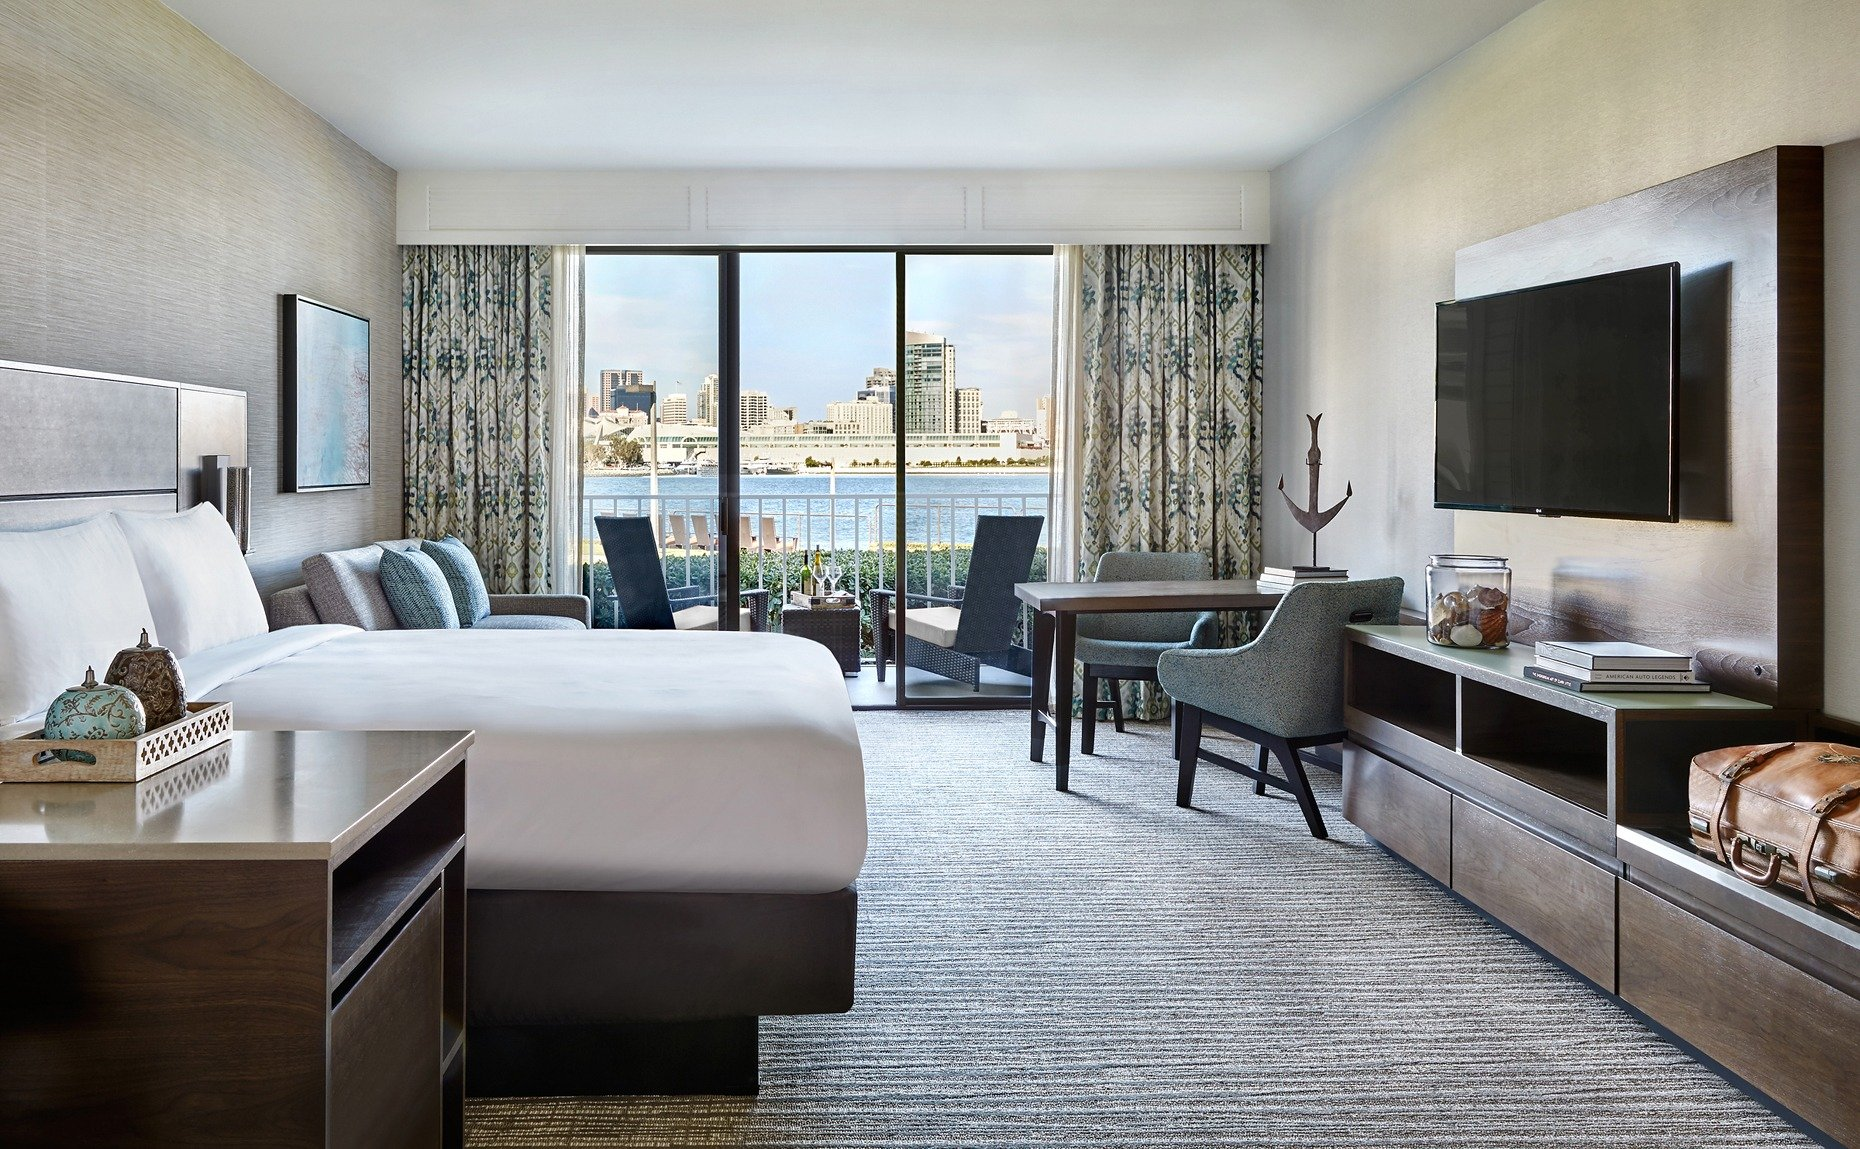 King room with a view over the terrace to the San Diego Bay